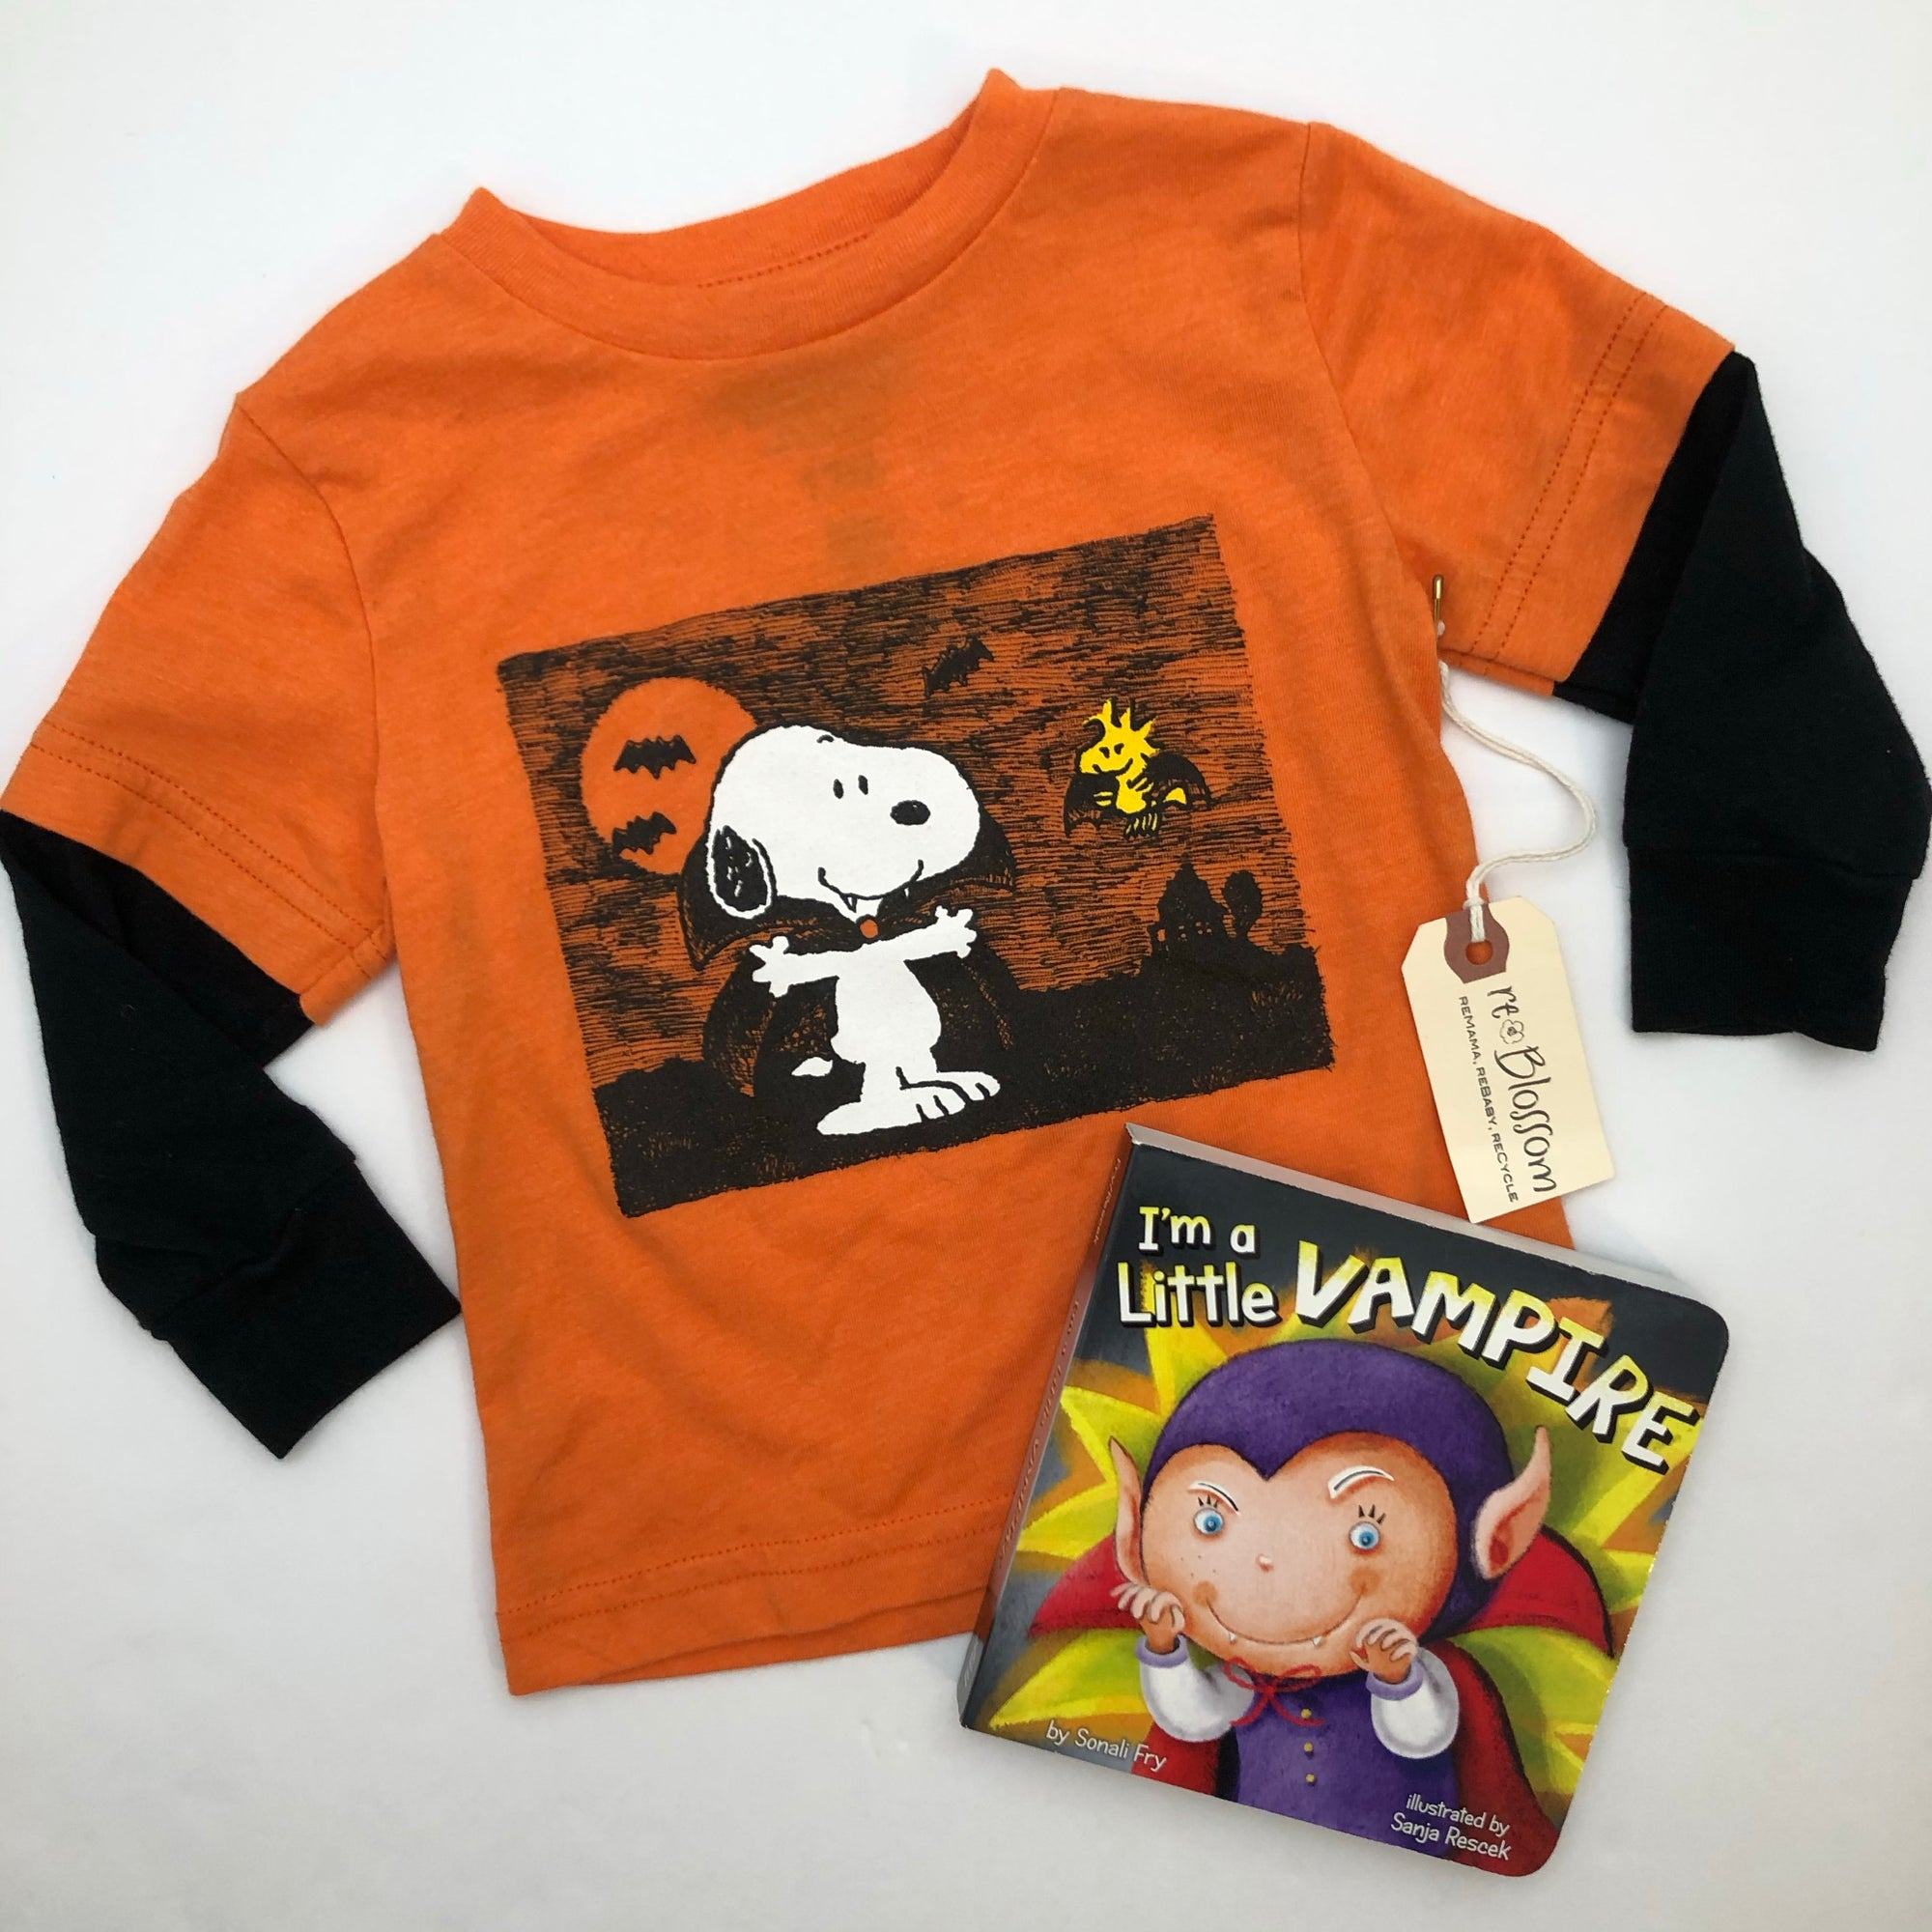 Resale 12 m Peanuts Snoopy & Woodstock Vampire Halloween T-Shirt & I'm a Little Vampire Board Book Set